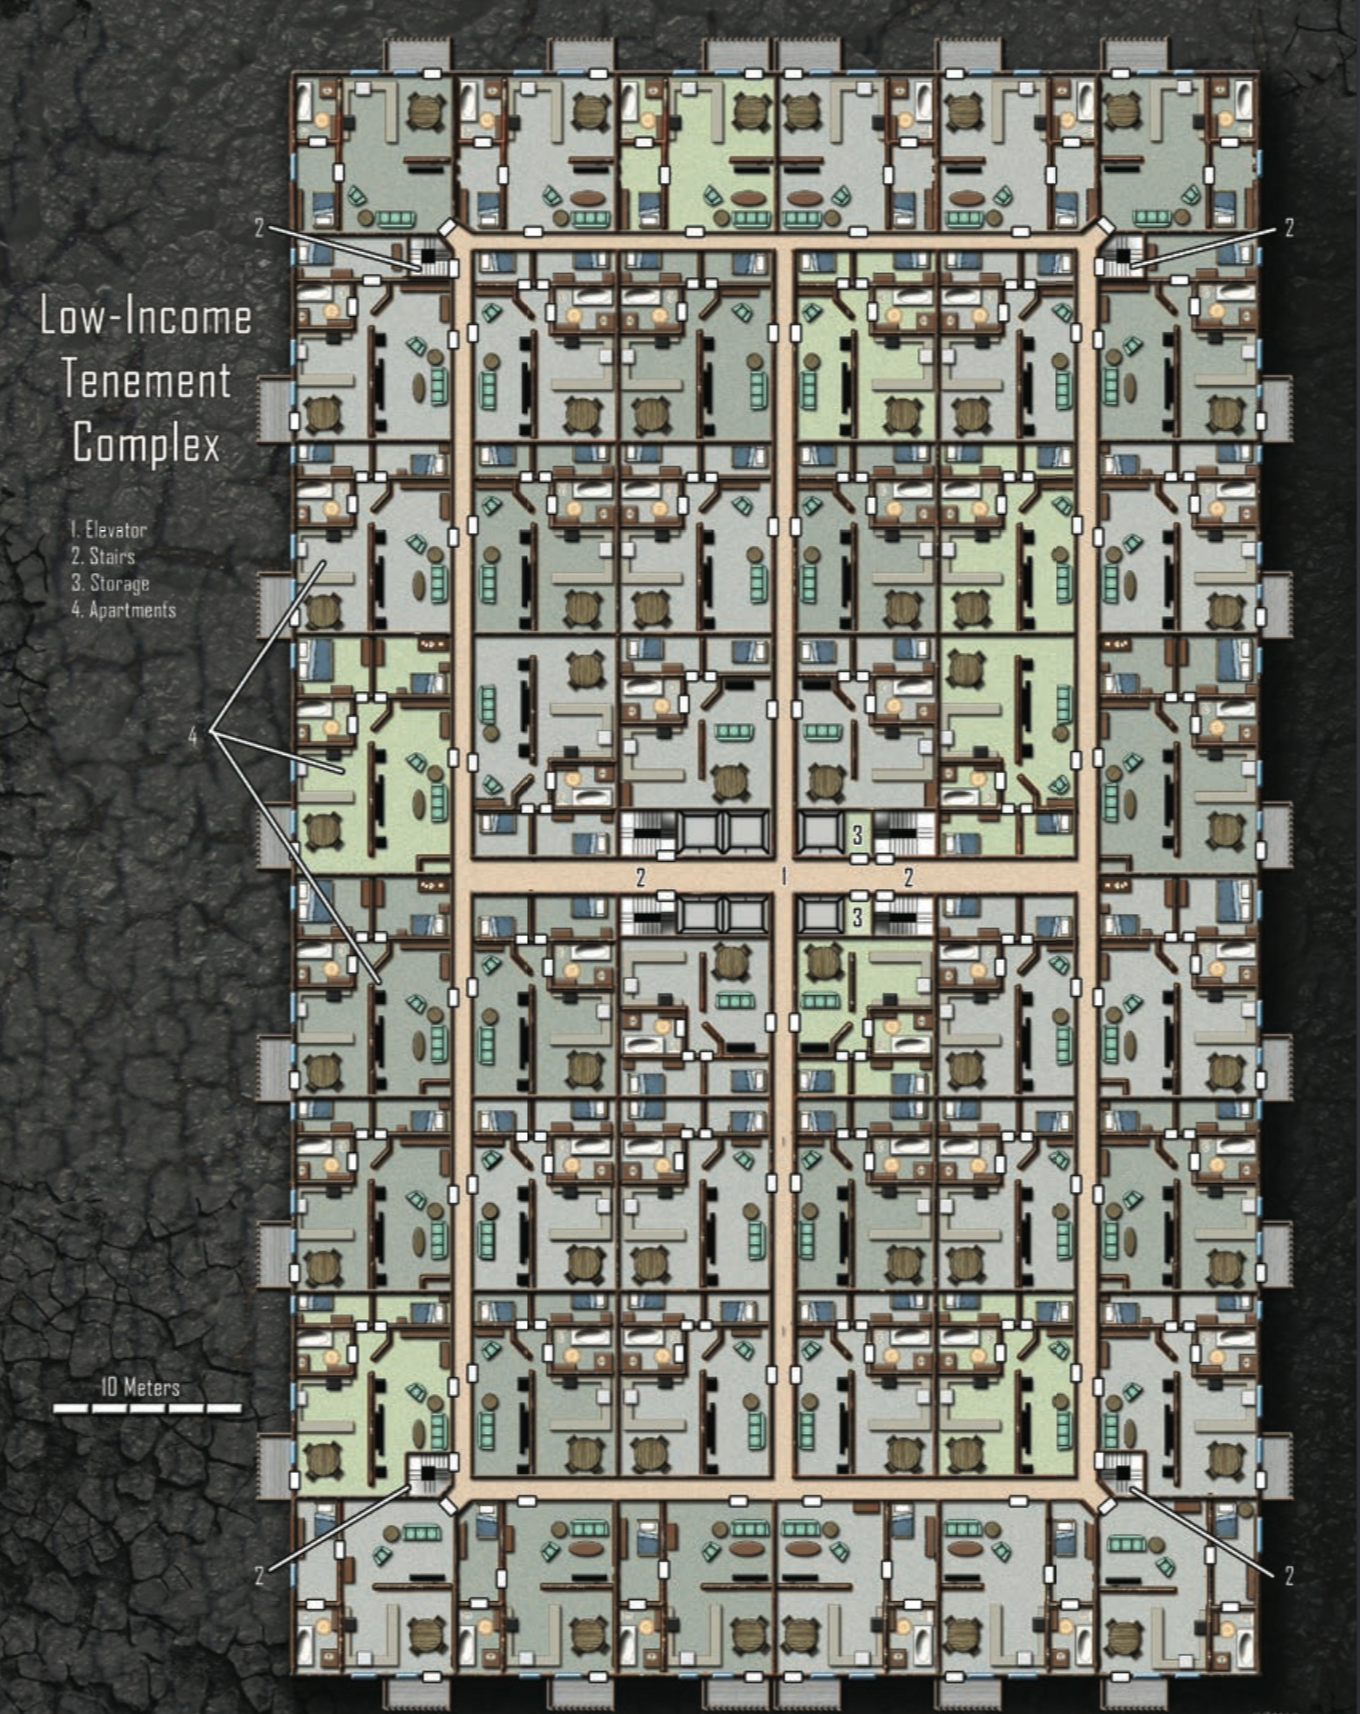 Low Income Tenement Complex shadowrun floorplan Low Income Tenement